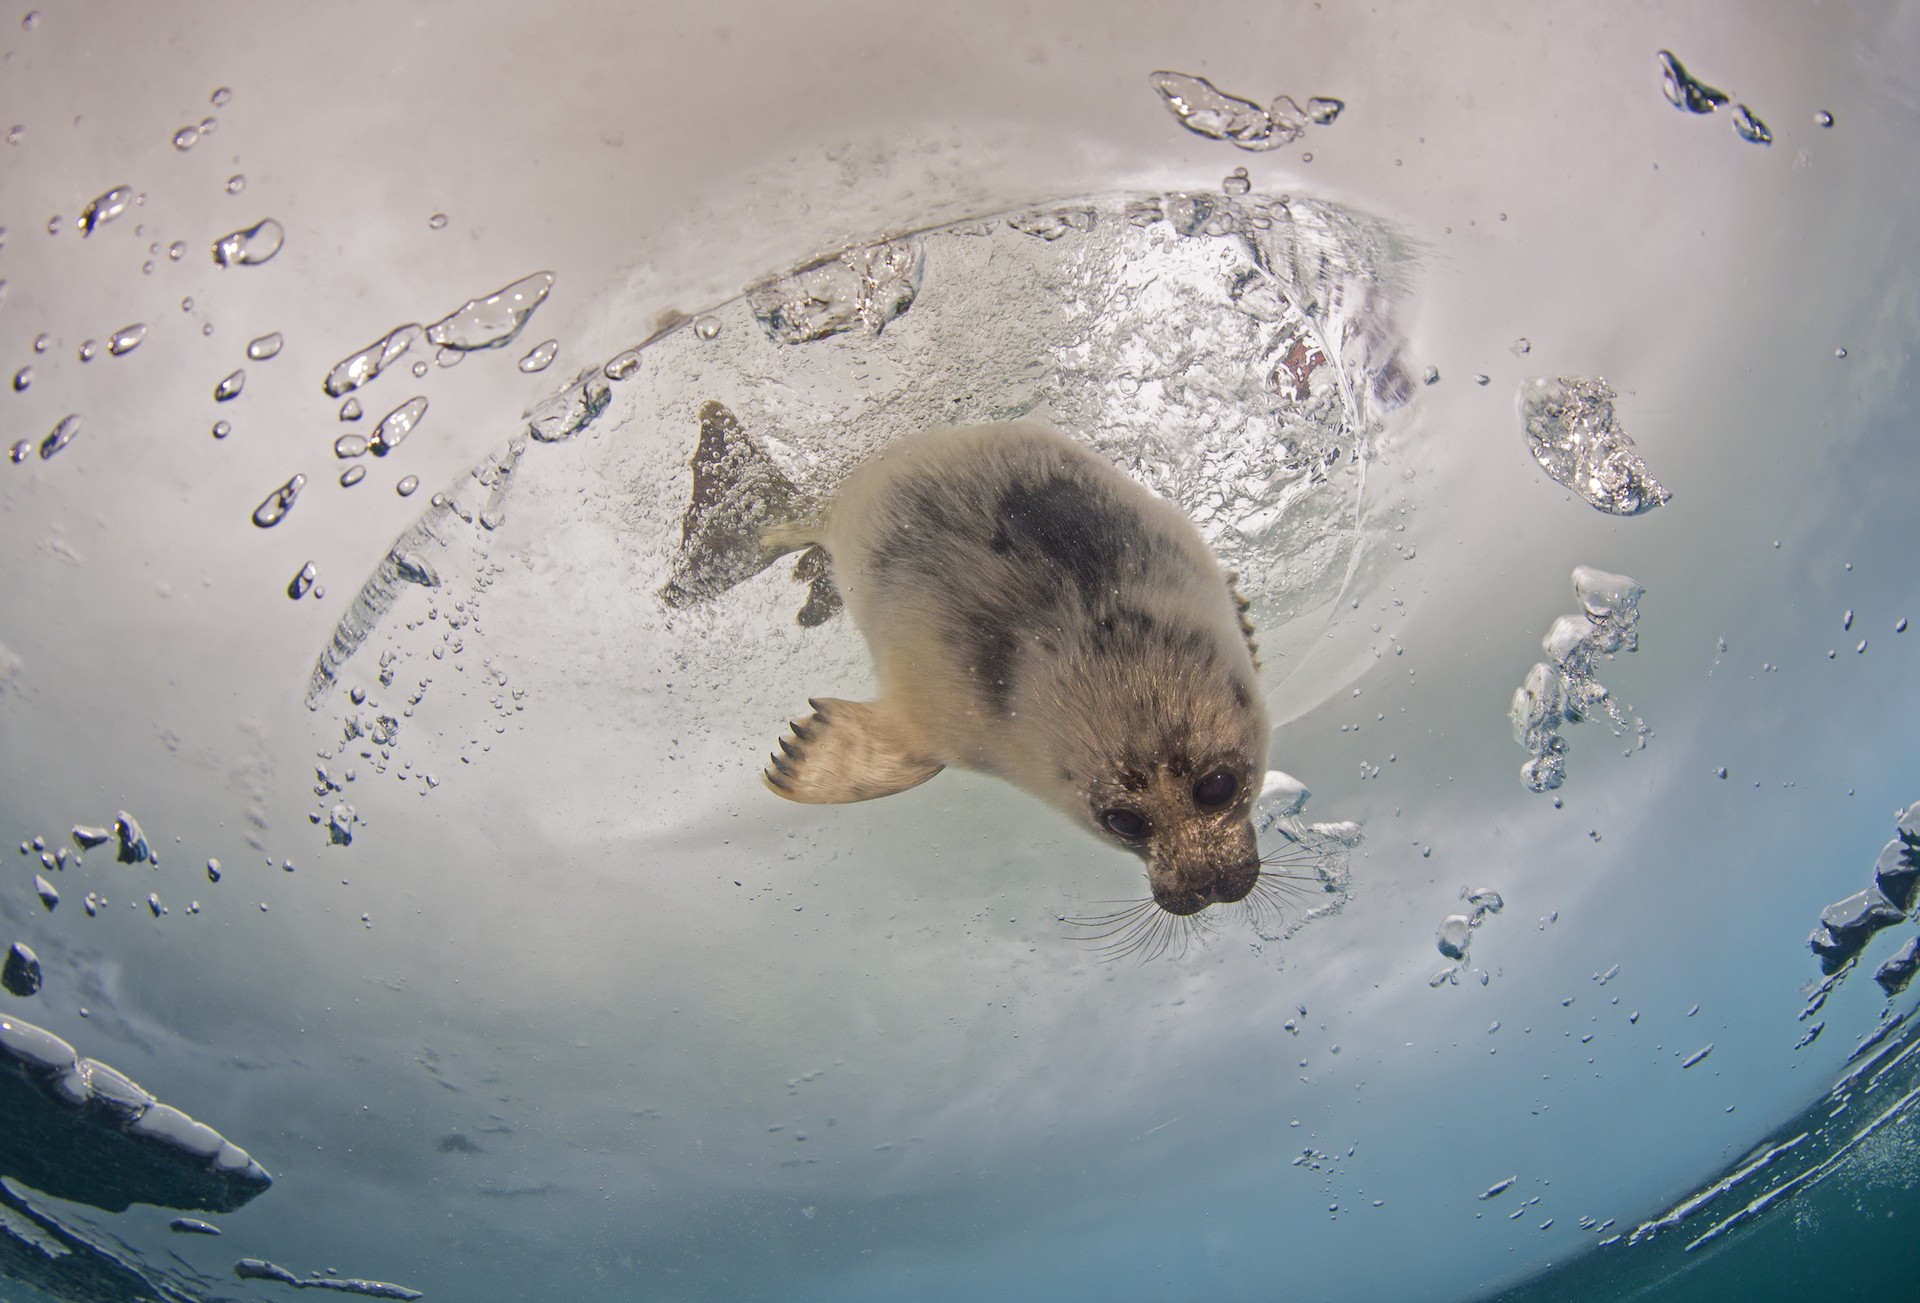 Shortly after my land encounter, the pup decided to go for a swim. So I did too. This image shows the seal entering the water from the hole in the ice. Underwater, I had my tanks for air, but the seal needed to return to the surface intermittently, for a breath of air.